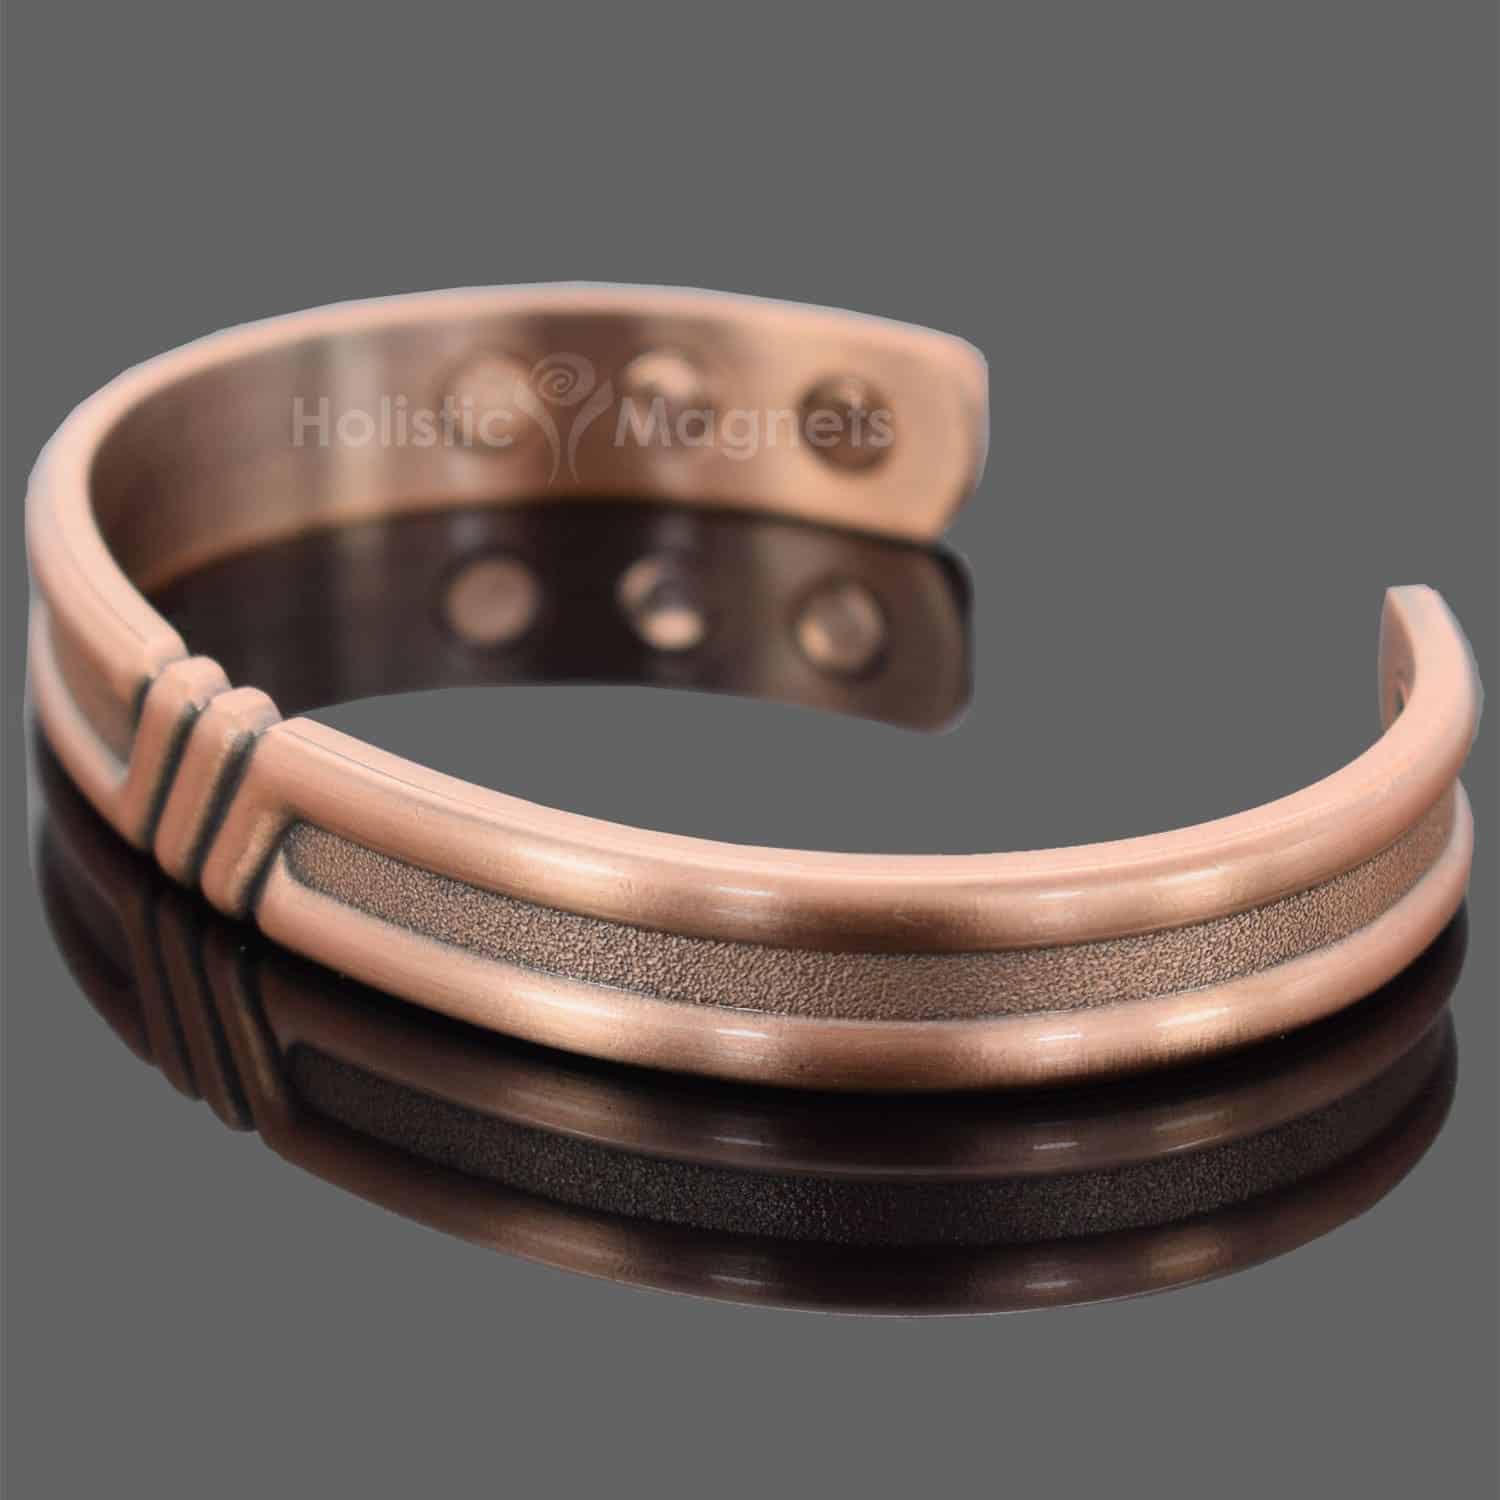 wide bracelet silver health mens toned women arthritis pain sb men healing copper bangle inch product therapy classic for magnetic cardiac